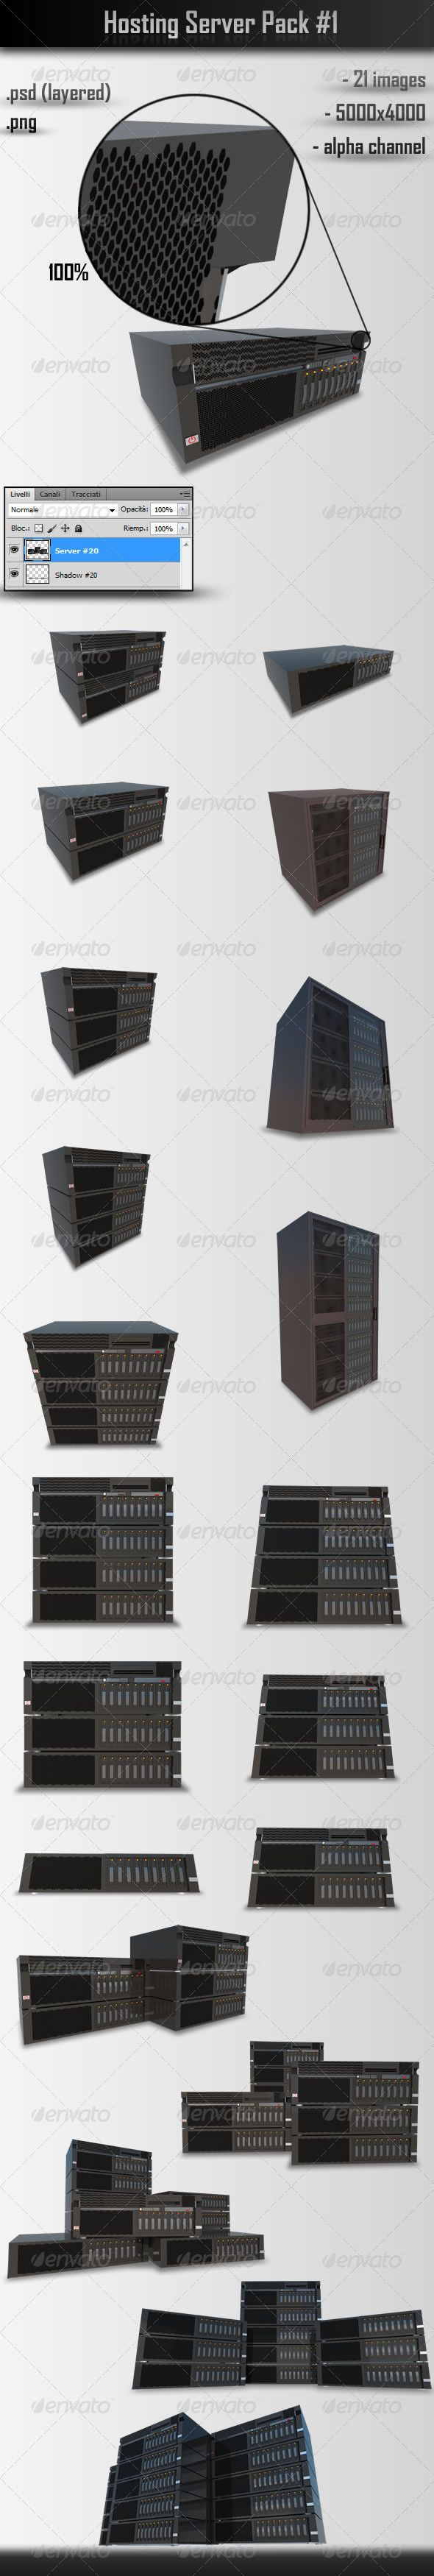 Hosting Server Pack #1  #GraphicRiver         21 photorealistic rendering of hosting server usable for images in design of sites, banners, booklets, posters, articles in magazines and more… including a layered .psd files and a PNG with transparent background     Created: 29October12 GraphicsFilesIncluded: PhotoshopPSD #TransparentPNG HighResolution: Yes Layered: Yes MinimumAdobeCSVersion: CS PixelDimensions: 5000x4000 Tags: black #cloud #computer #ebusiness #hardware #hosting #mainframe…